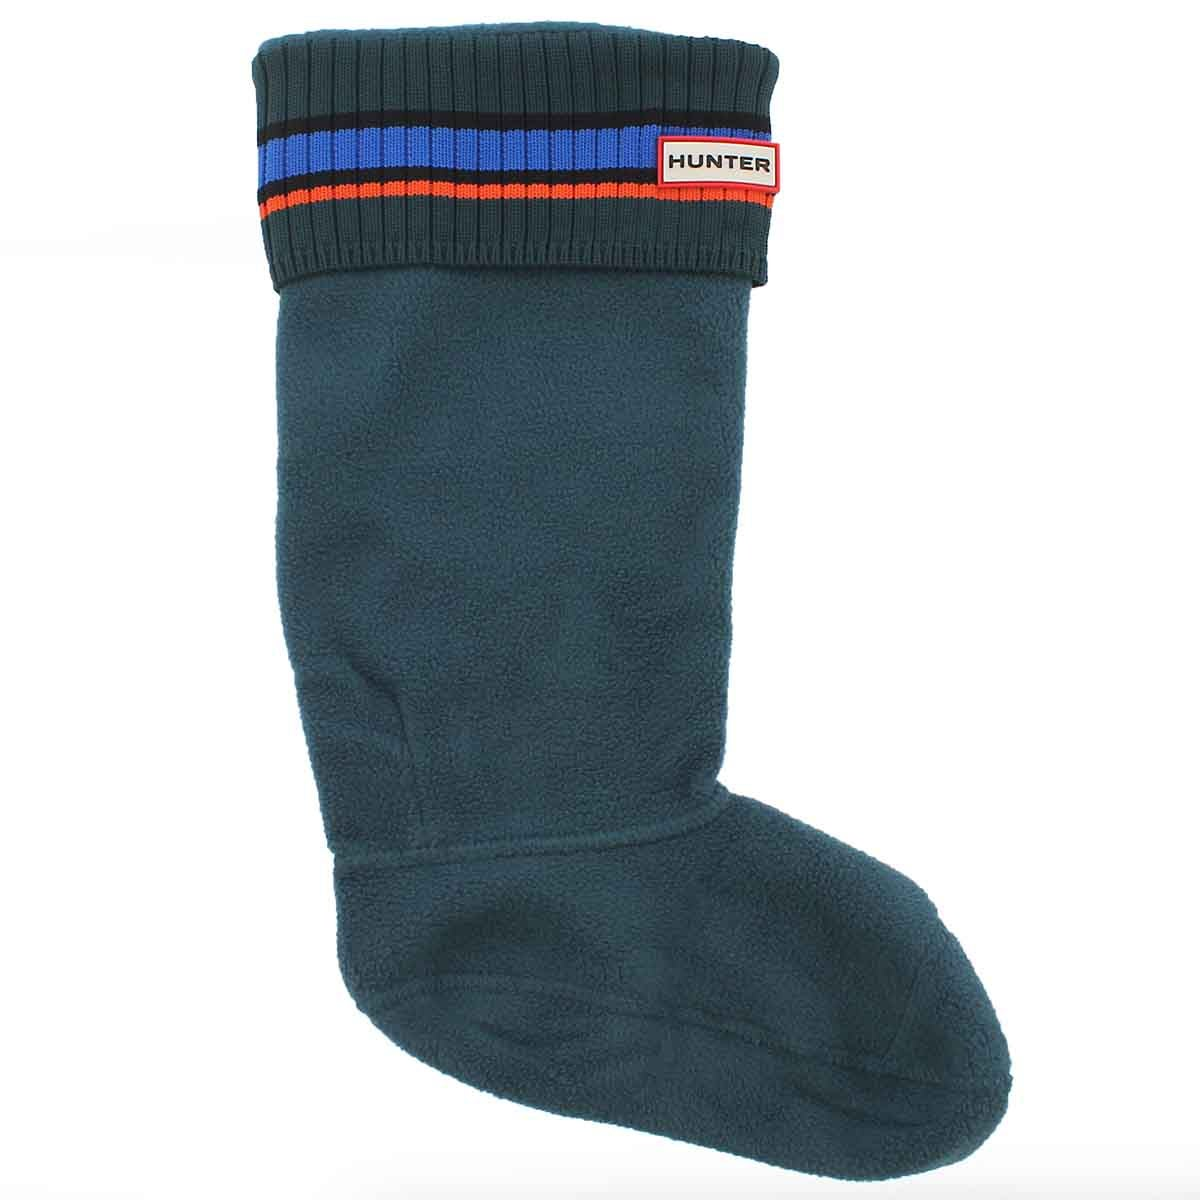 Lds Buoy Stripe grn/blu/red boot sock